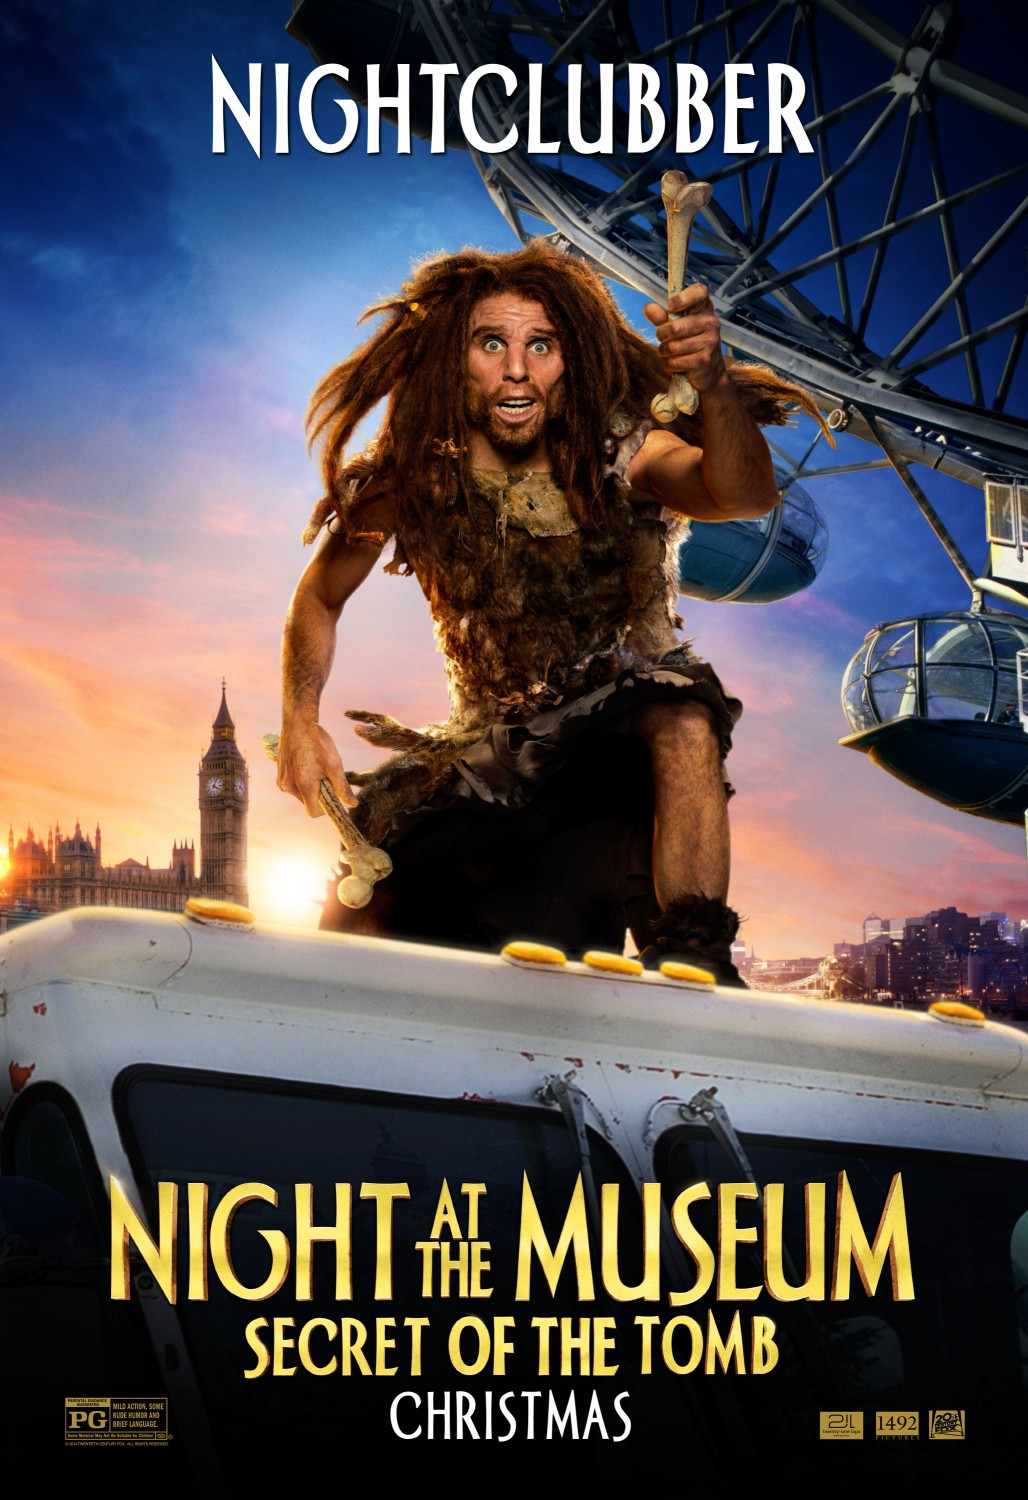 Night at the Museum Secret of the Tomb-PROMO CHAR-21NOVEMBRO2014-04